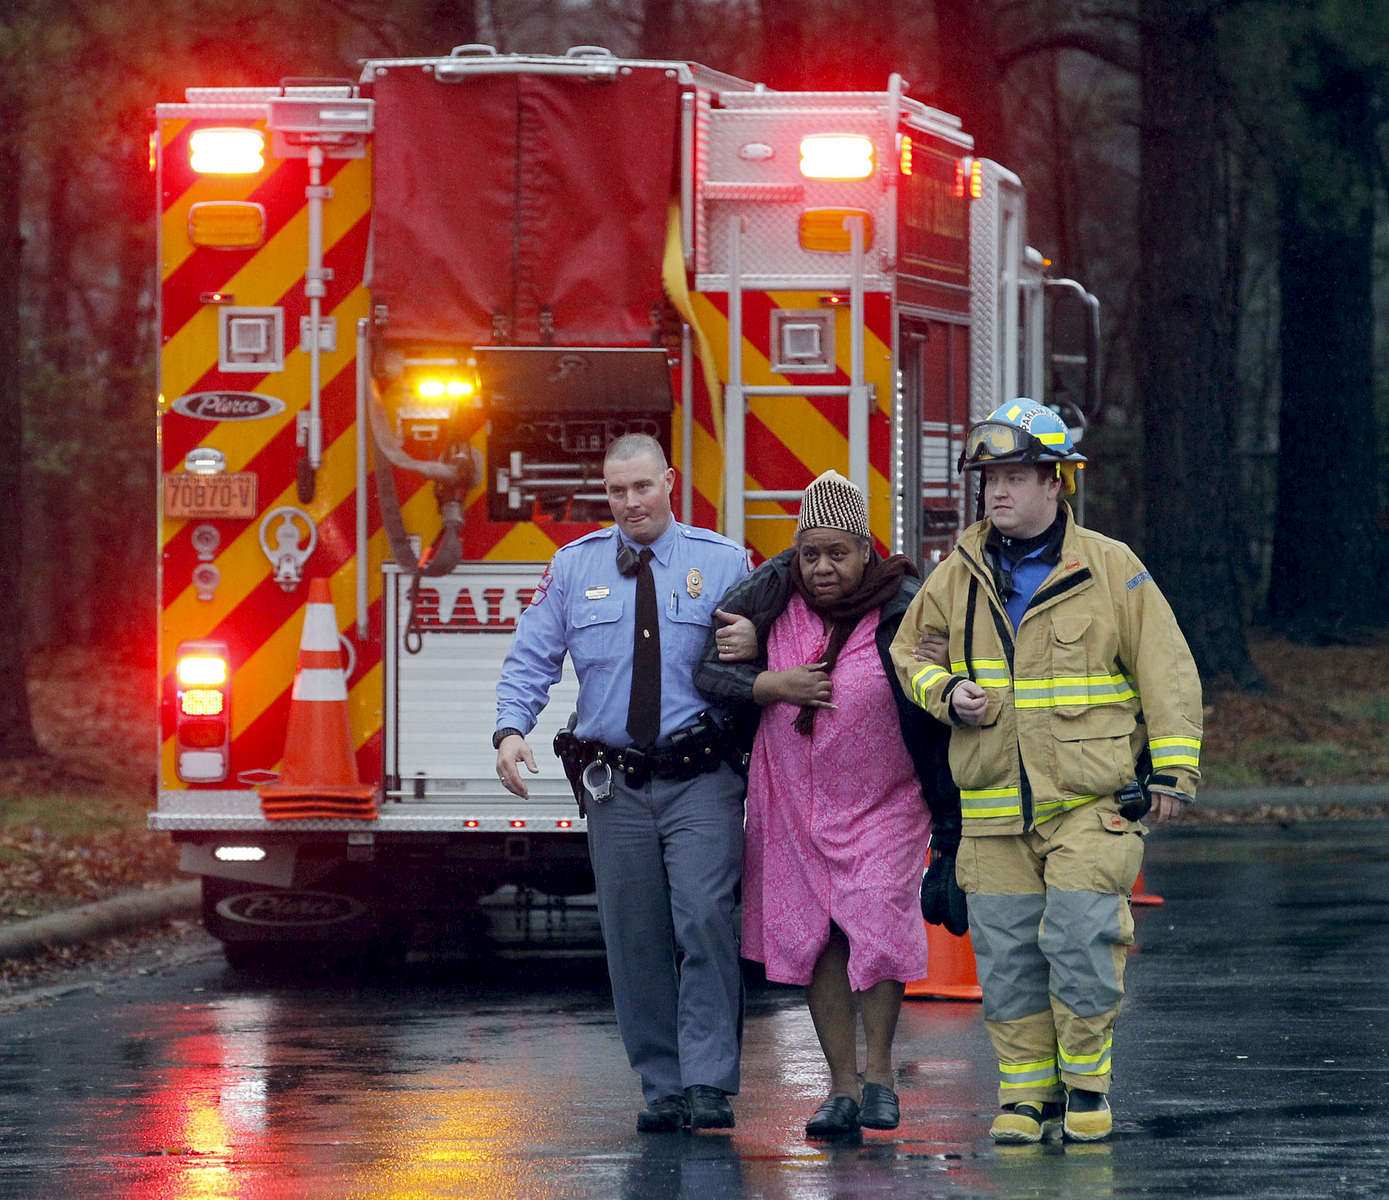 First Place | Spot NewsChris Steward, News & ObserverA Raleigh police officer and a paramedic offer assistance as they evacuate a woman after fire broke out at the Raleigh Inn.